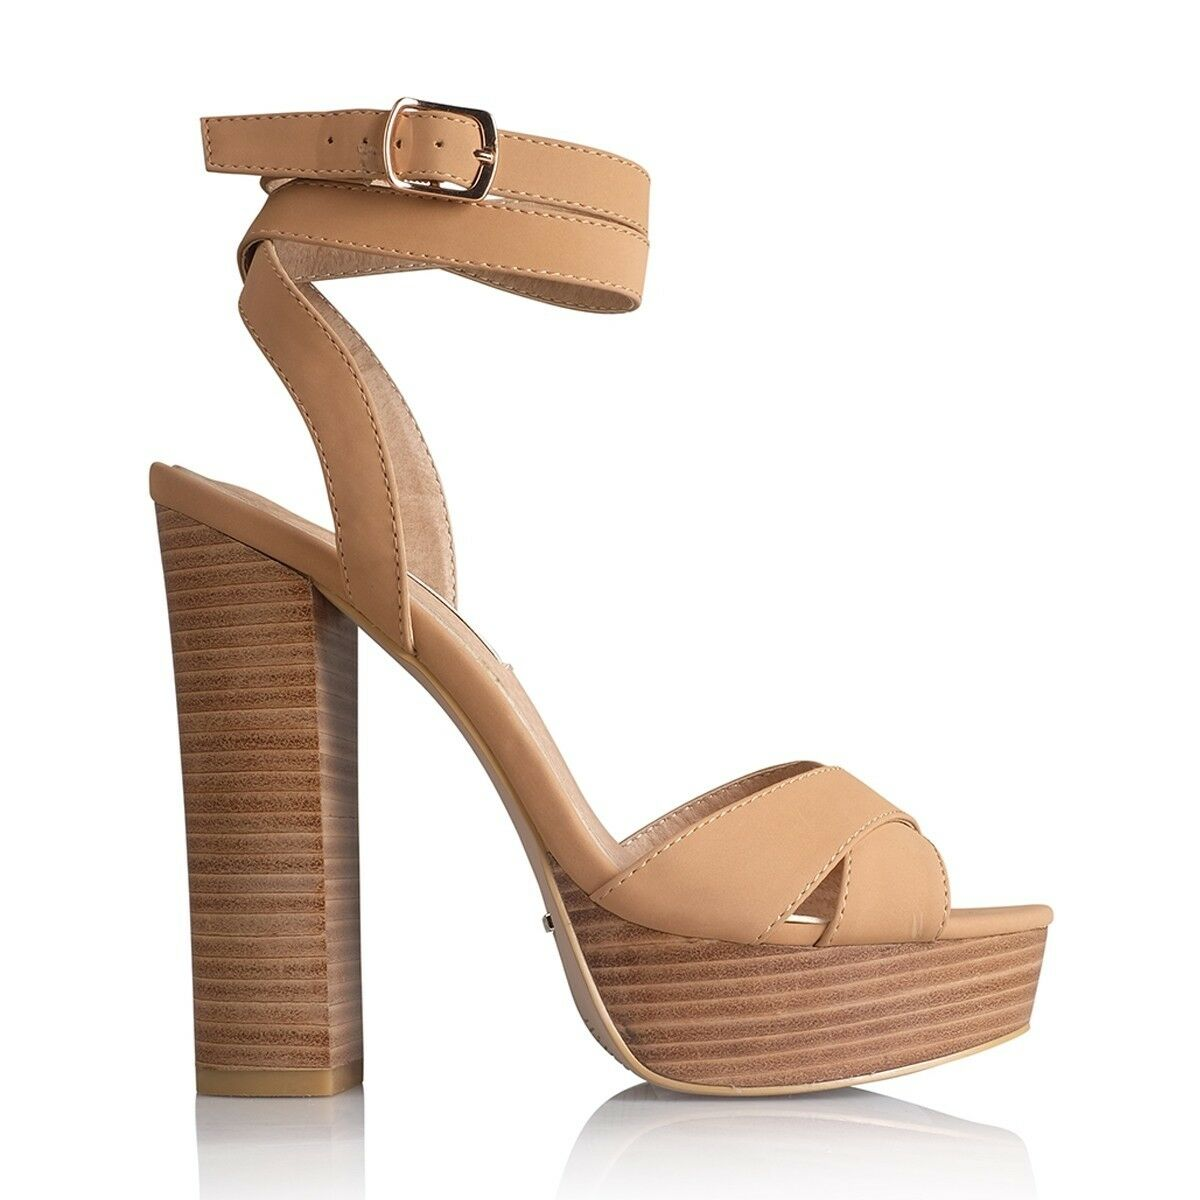 BILLINI PLATFORM ELIA TAN PLATFORM BILLINI HEELS SANDALS WRAP AROUND ANKLE STRAP 37 SOLD OUT 54ff3e